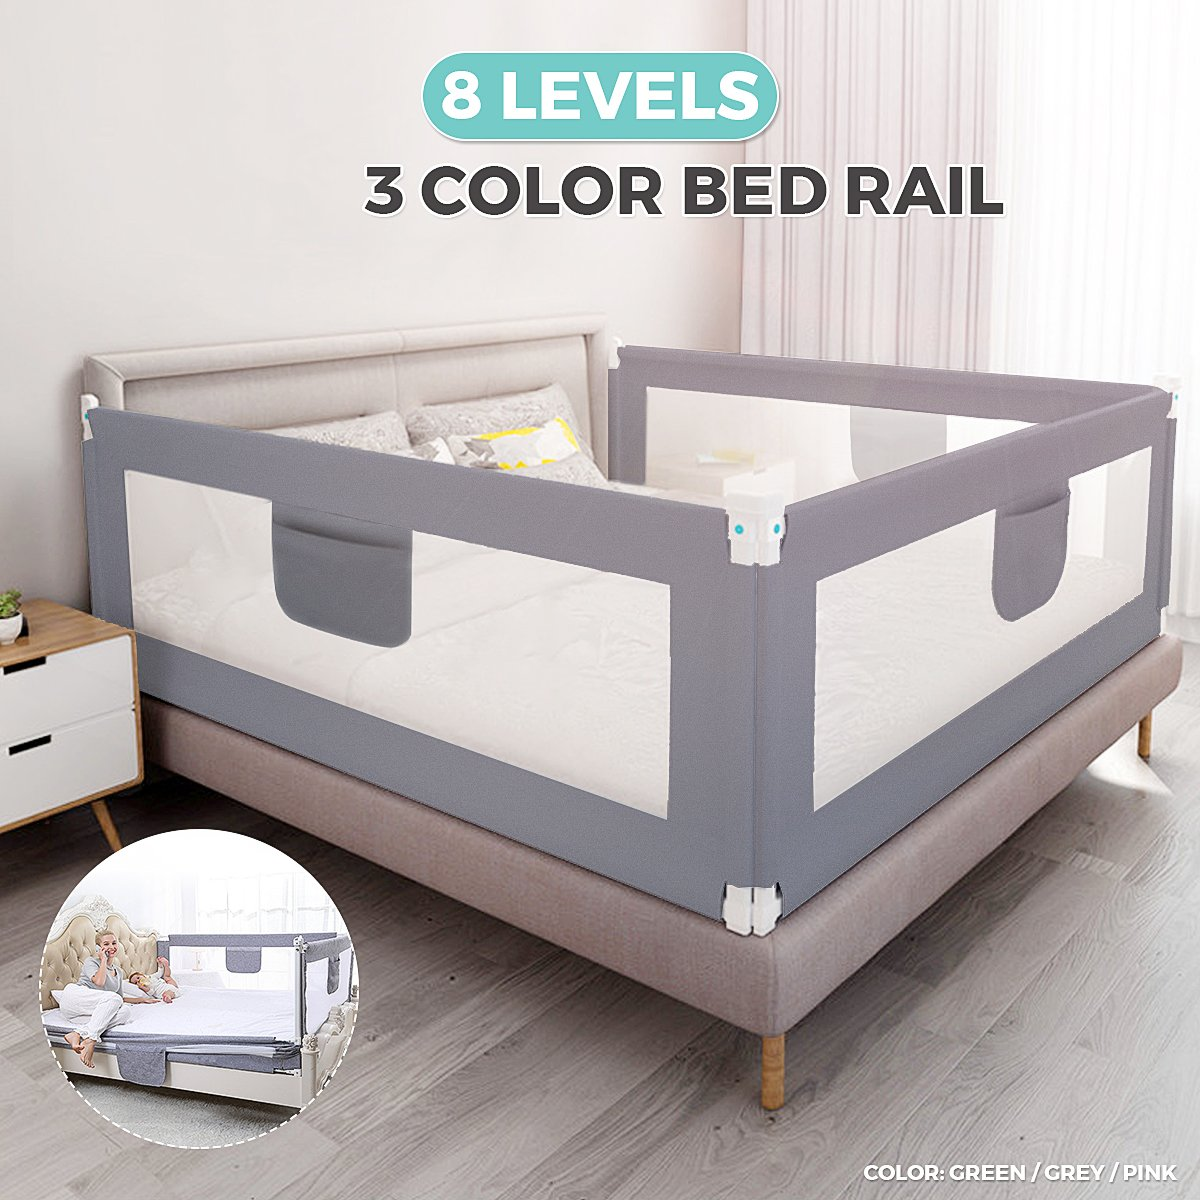 180cm Bed Rail Foldable Children Bed Rail Home Kids Adults Easy to Assemble Senior Bed Safety Rail